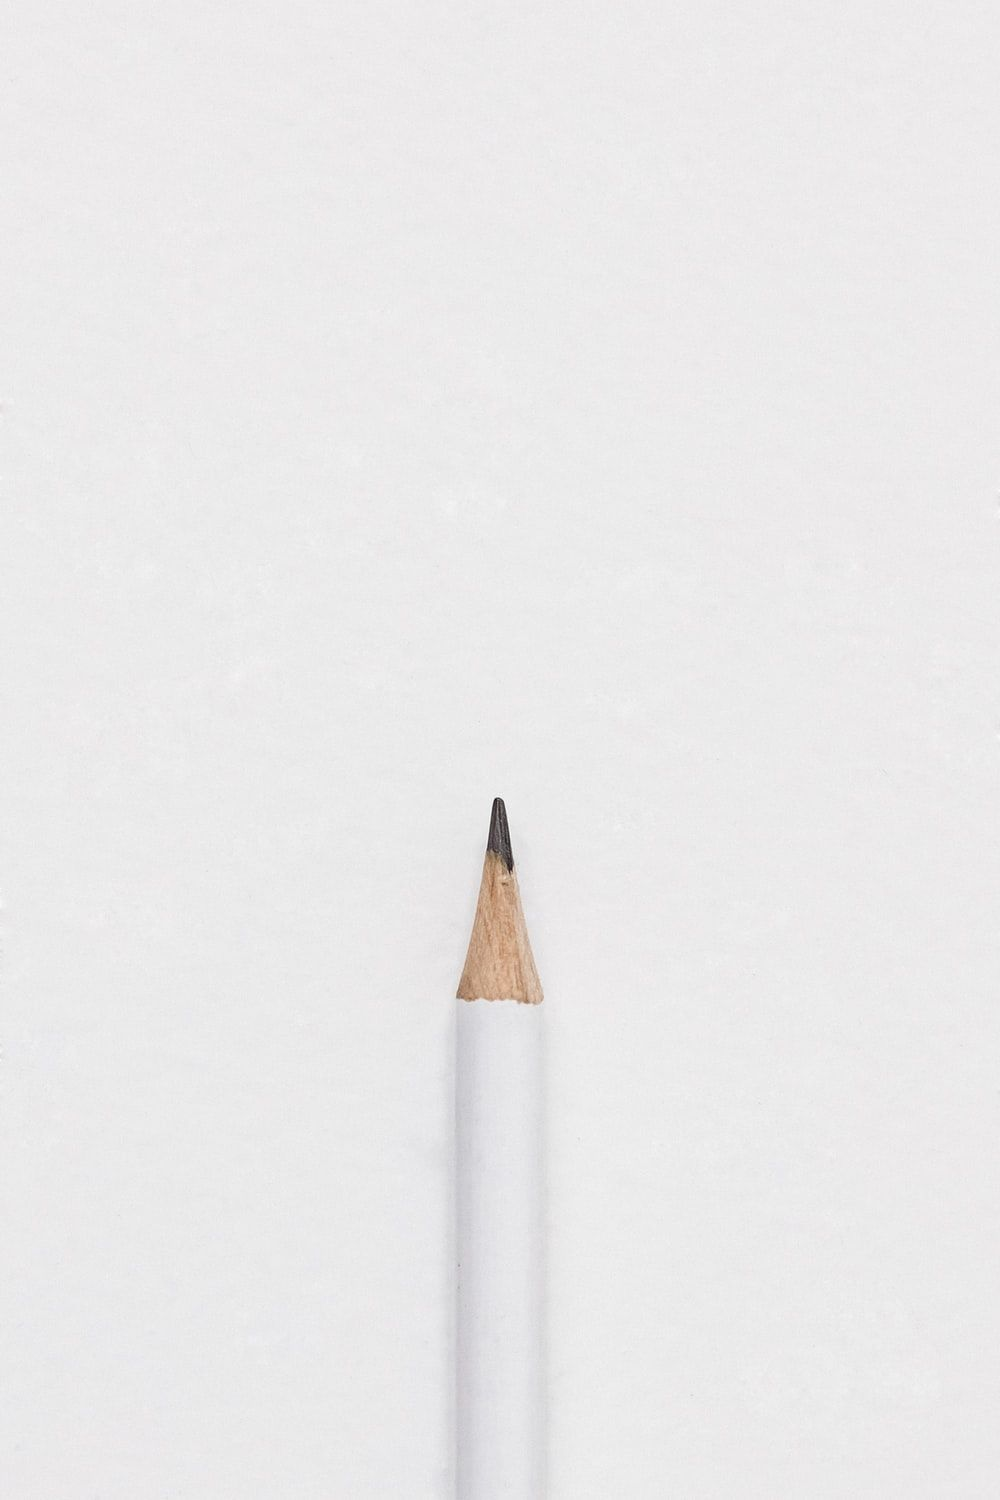 1000x1500 500+ Pencil Pictures | Download Free Images & Stock Photos ...